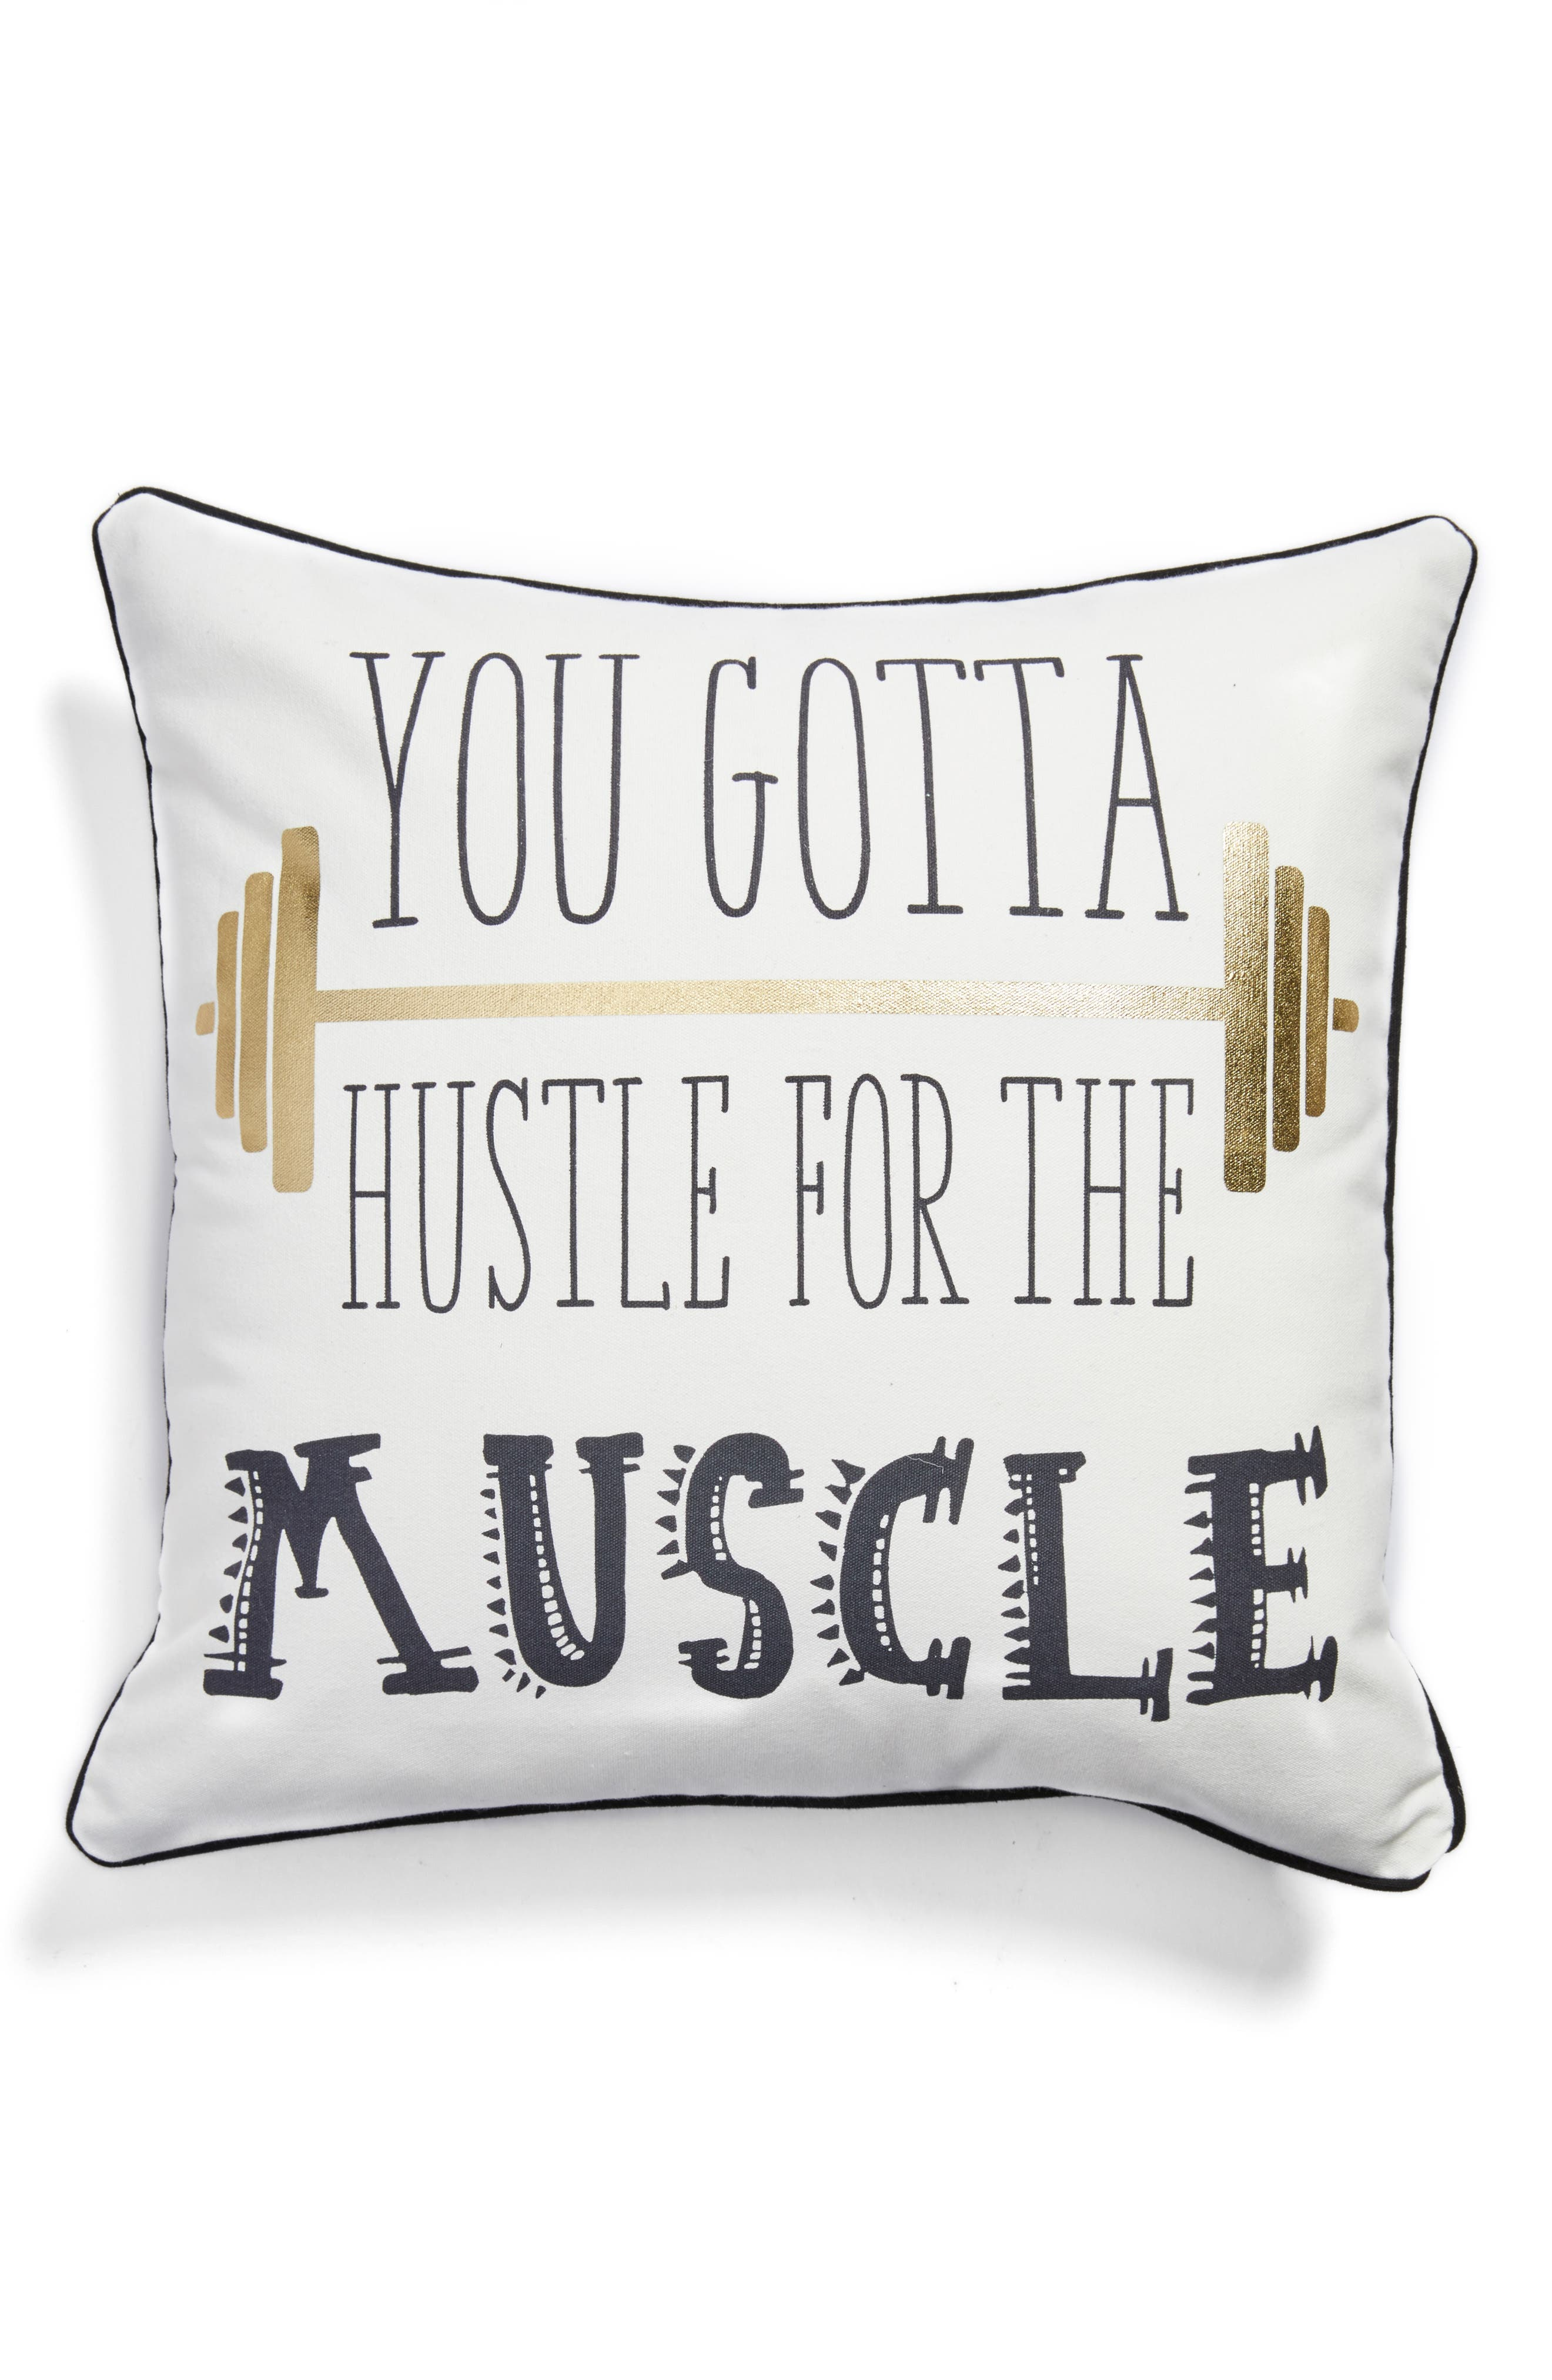 Hustle for the Muscle Pillow,                         Main,                         color,